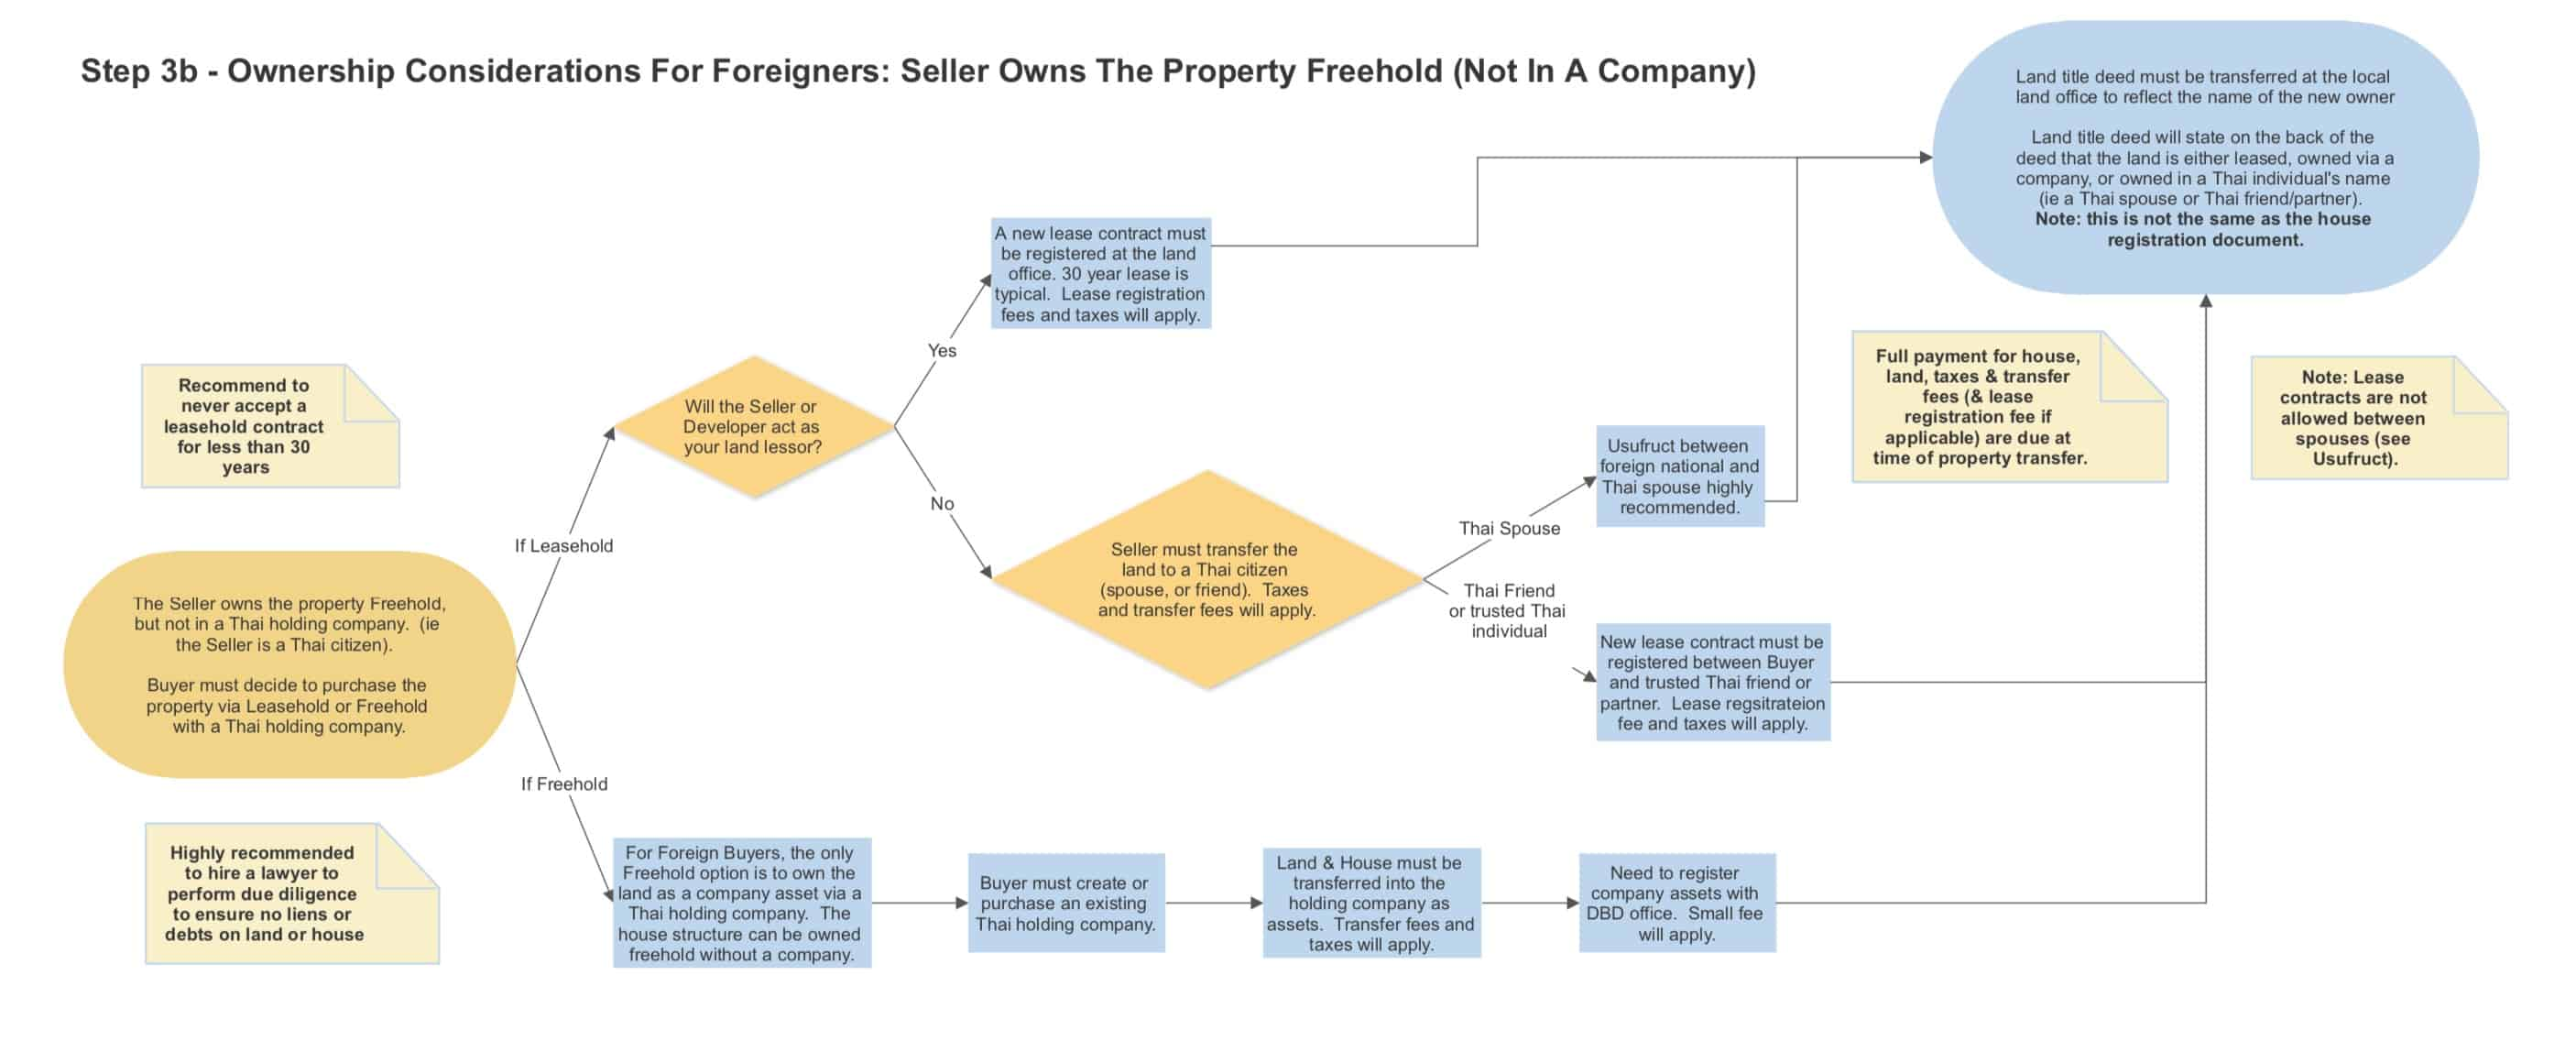 How To Buy Property In Thailand Step By Step Guide   Awesome! Property Transfer Flow Charts   Steps 1 -3 1